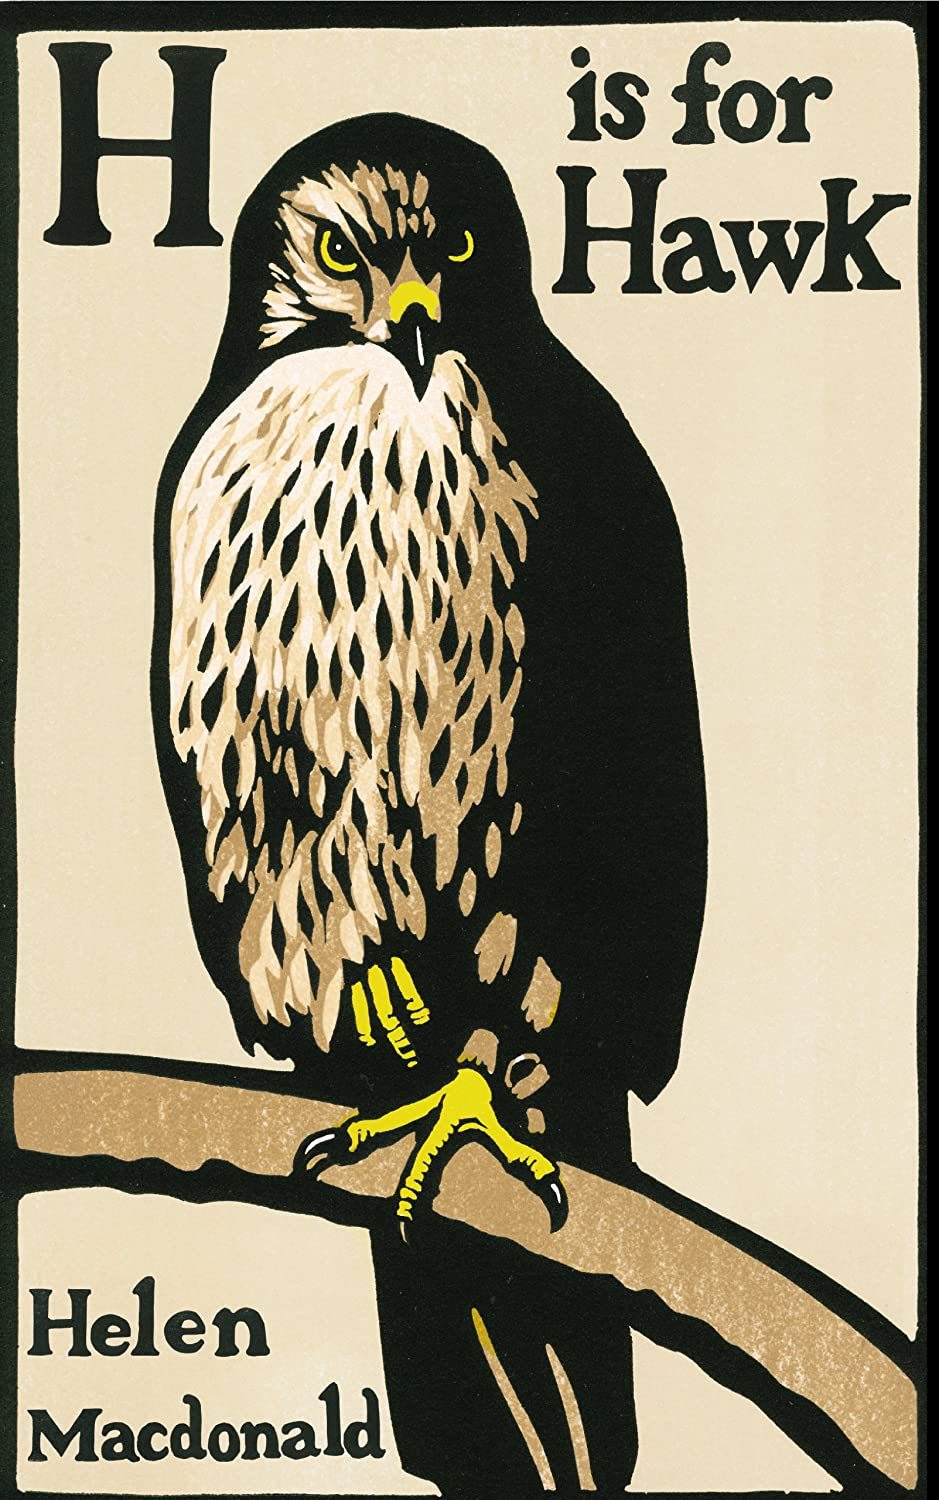 H is for Hawk wins Costa Book of the Year